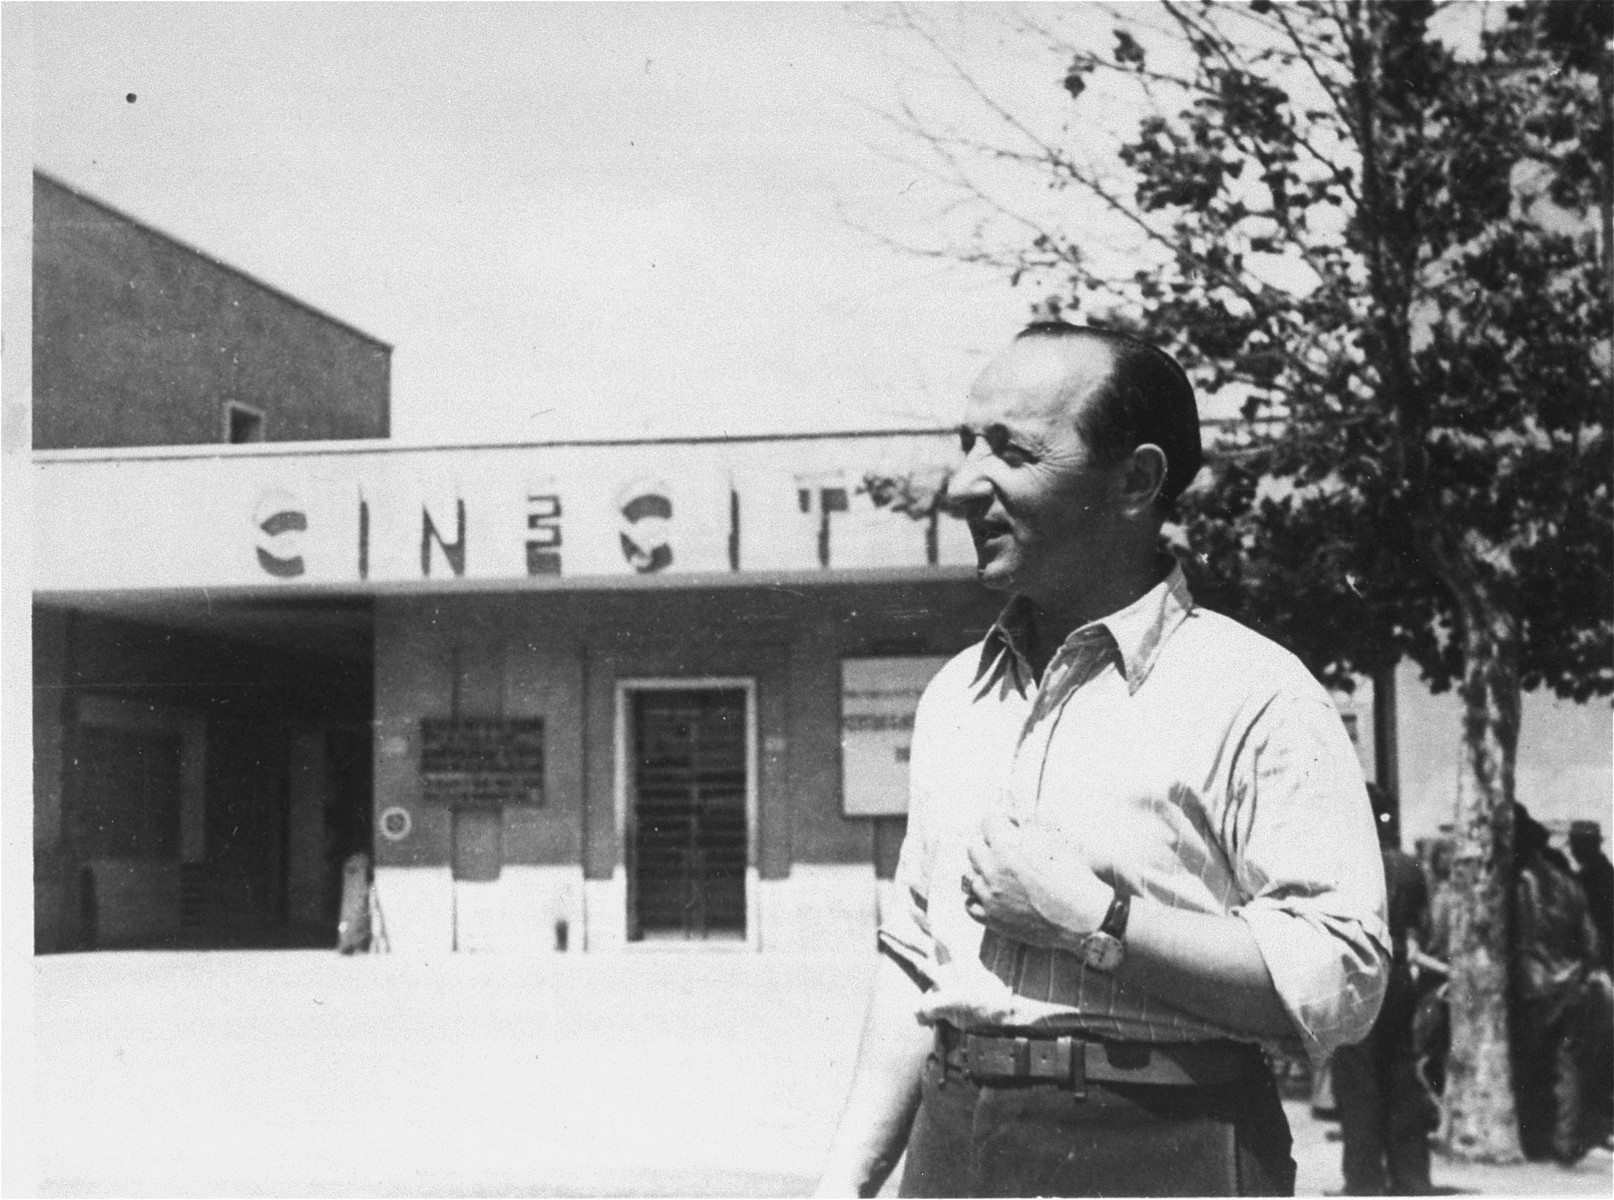 A Jewish DP poses at the entrance to the Cinecitta displaced persons camp in Rome.  Pictured is Edward Arzt.